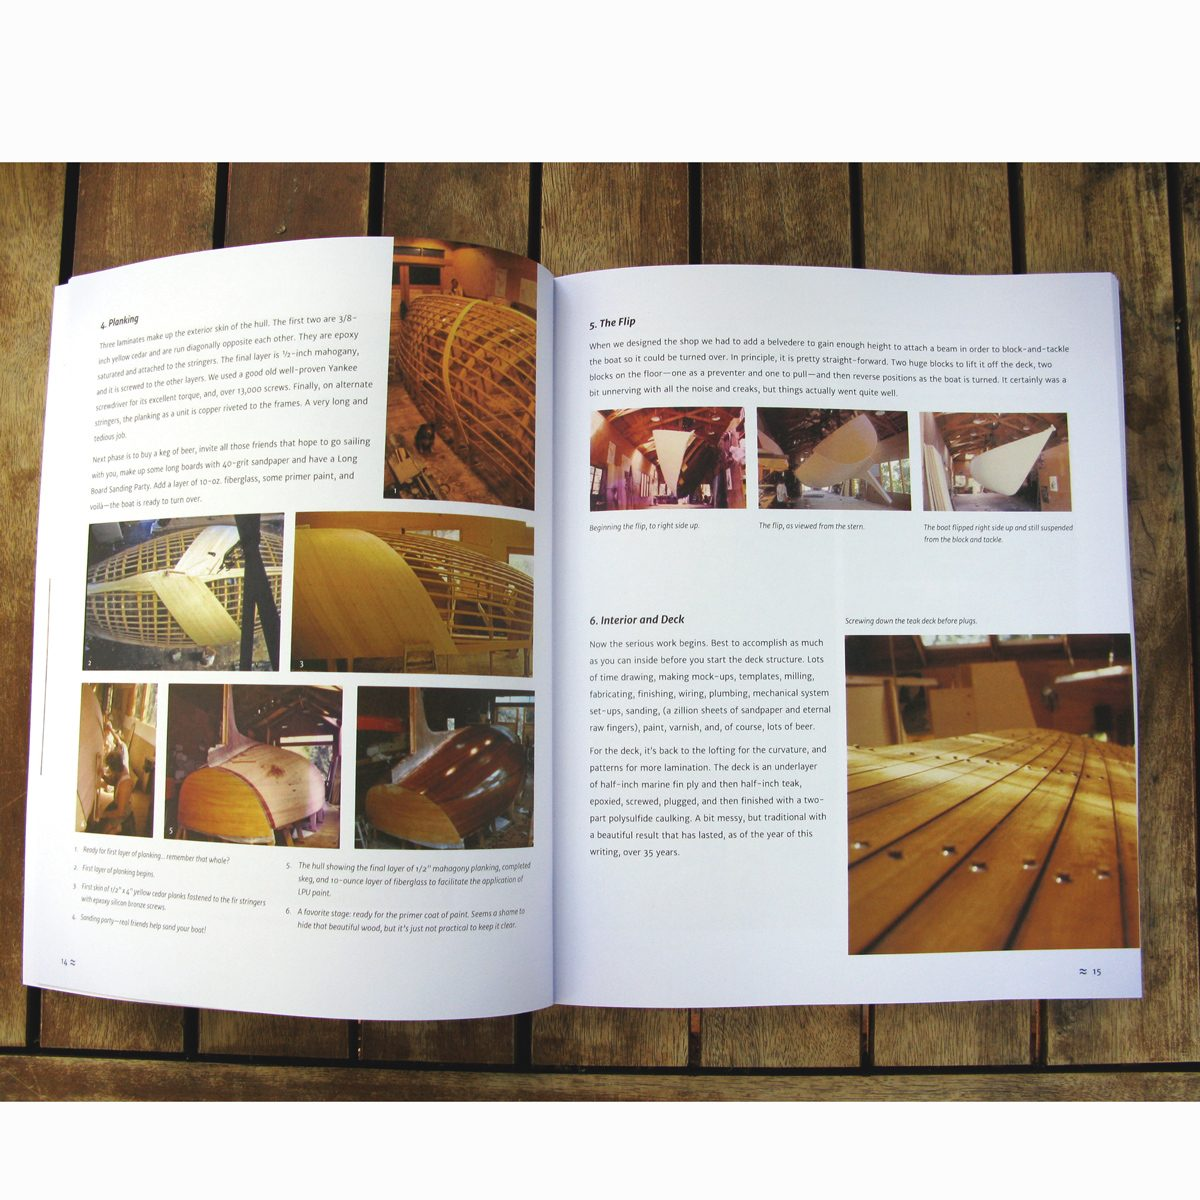 Shanachie: A Wooden Boat Story open to a page spread on construction